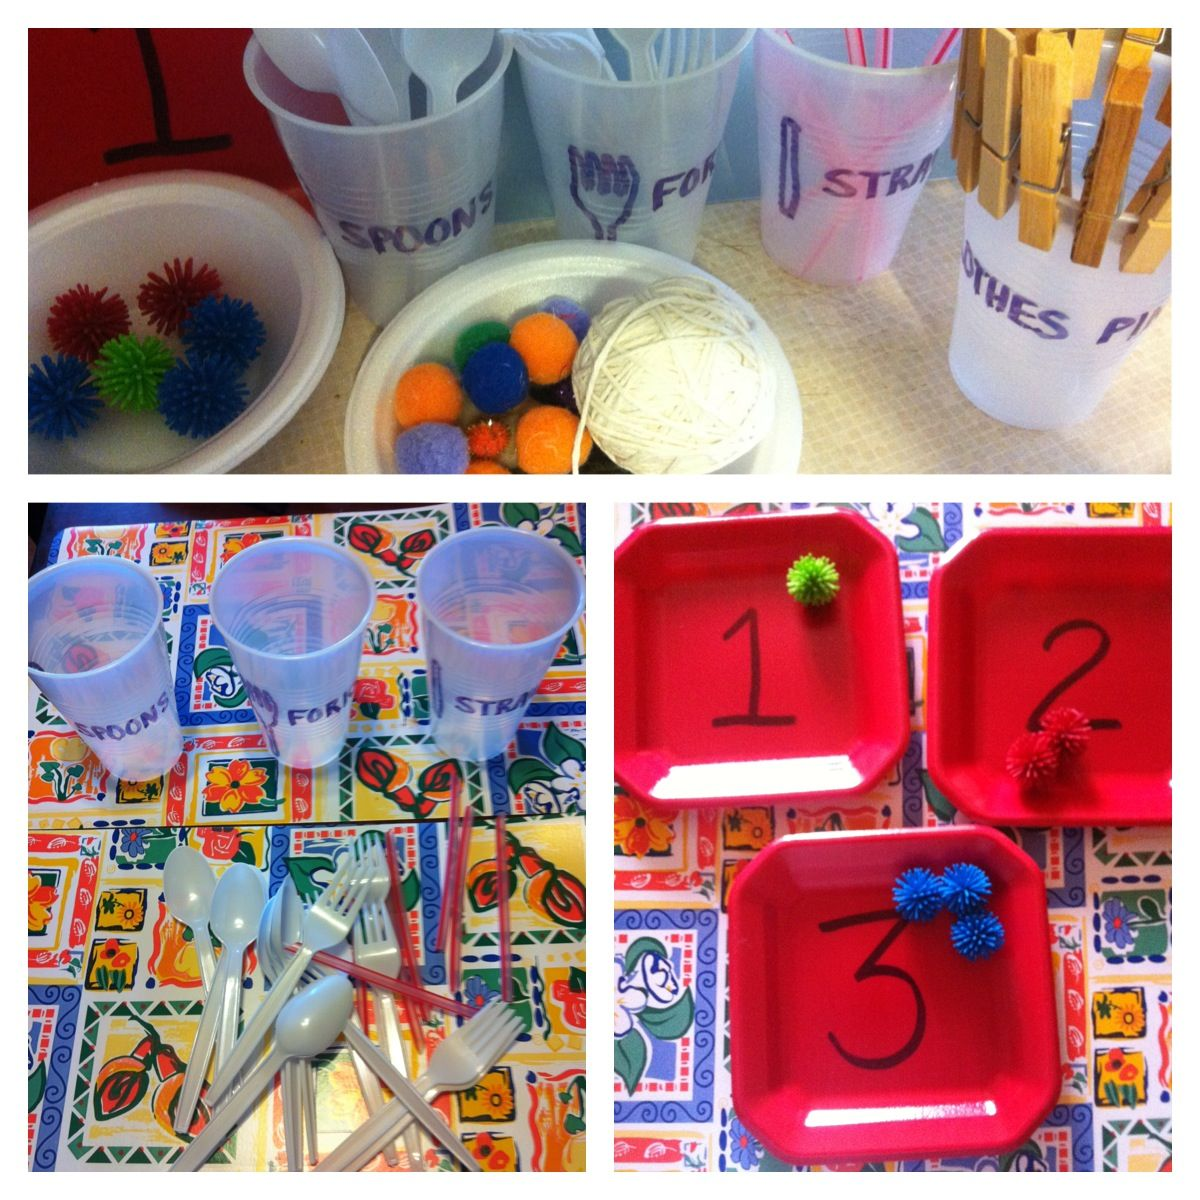 Occupational therapy activities for adults absolutely